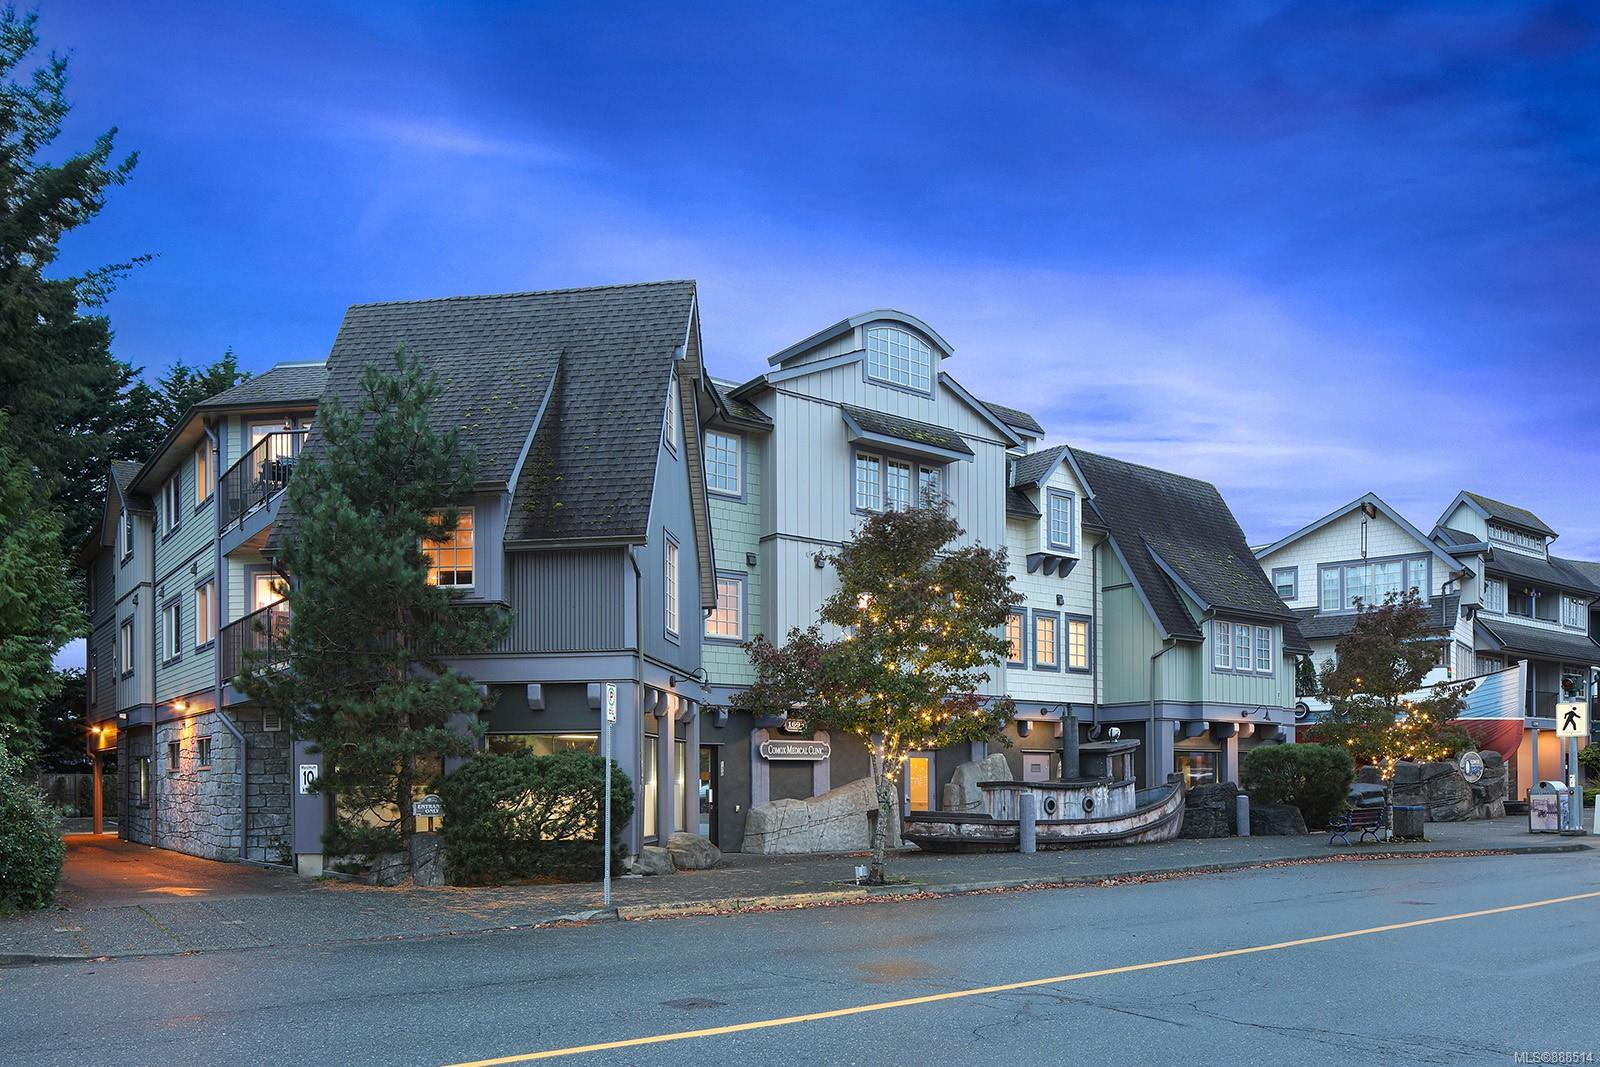 Lovely updated 2 bed 2 bath condo in the Comox Quay! Located right in the heart of the beautiful town of Comox surrounded by all the amenities you could possibly need; coffee shops, banking, groceries, post office, health professionals, restaurants, marina and more! The light filled design and spacious layout give this condo a pleasant feel as soon as you walk in the door. With updated paint, floors, appliances and hot water tank, this space is move-in ready with a bonus storage room downstairs by a covered parking stall. 30+ age complex, no rentals and 1 small cat or dog is permitted.